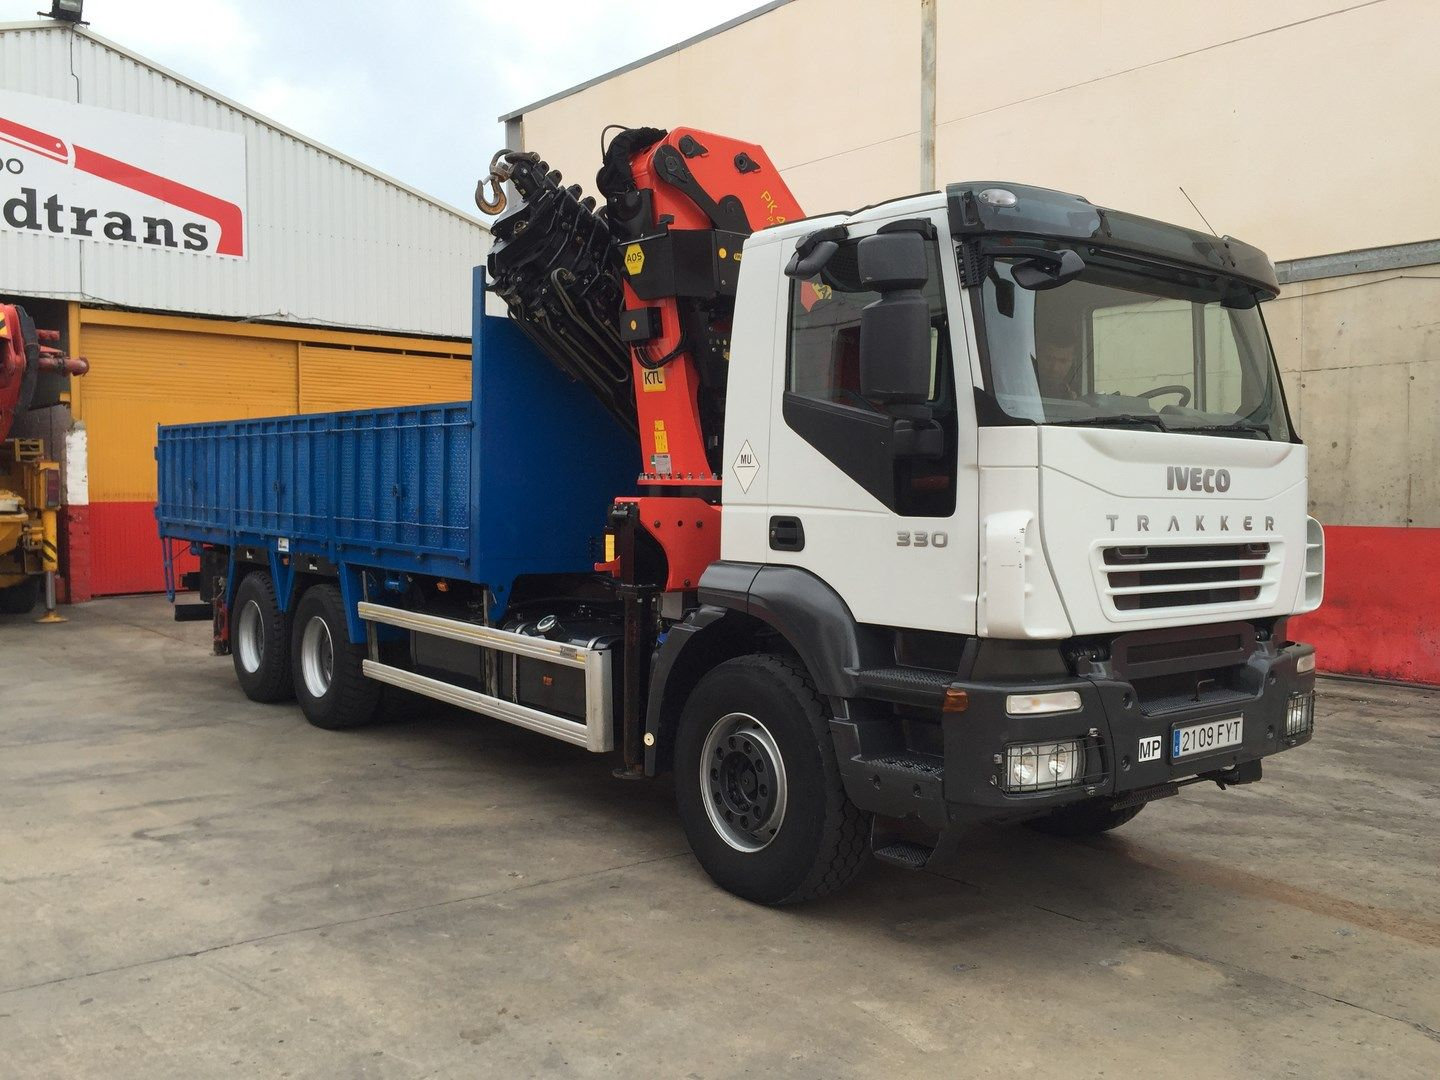 Self Loading Crane Truck Iveco Trakker 330 Cv 2007 Euro 4 6x4 Zf 16v 144 500km Equipped With Crane Palfinger 44002 8 2 H Truck Cranes Trucks Used Trucks